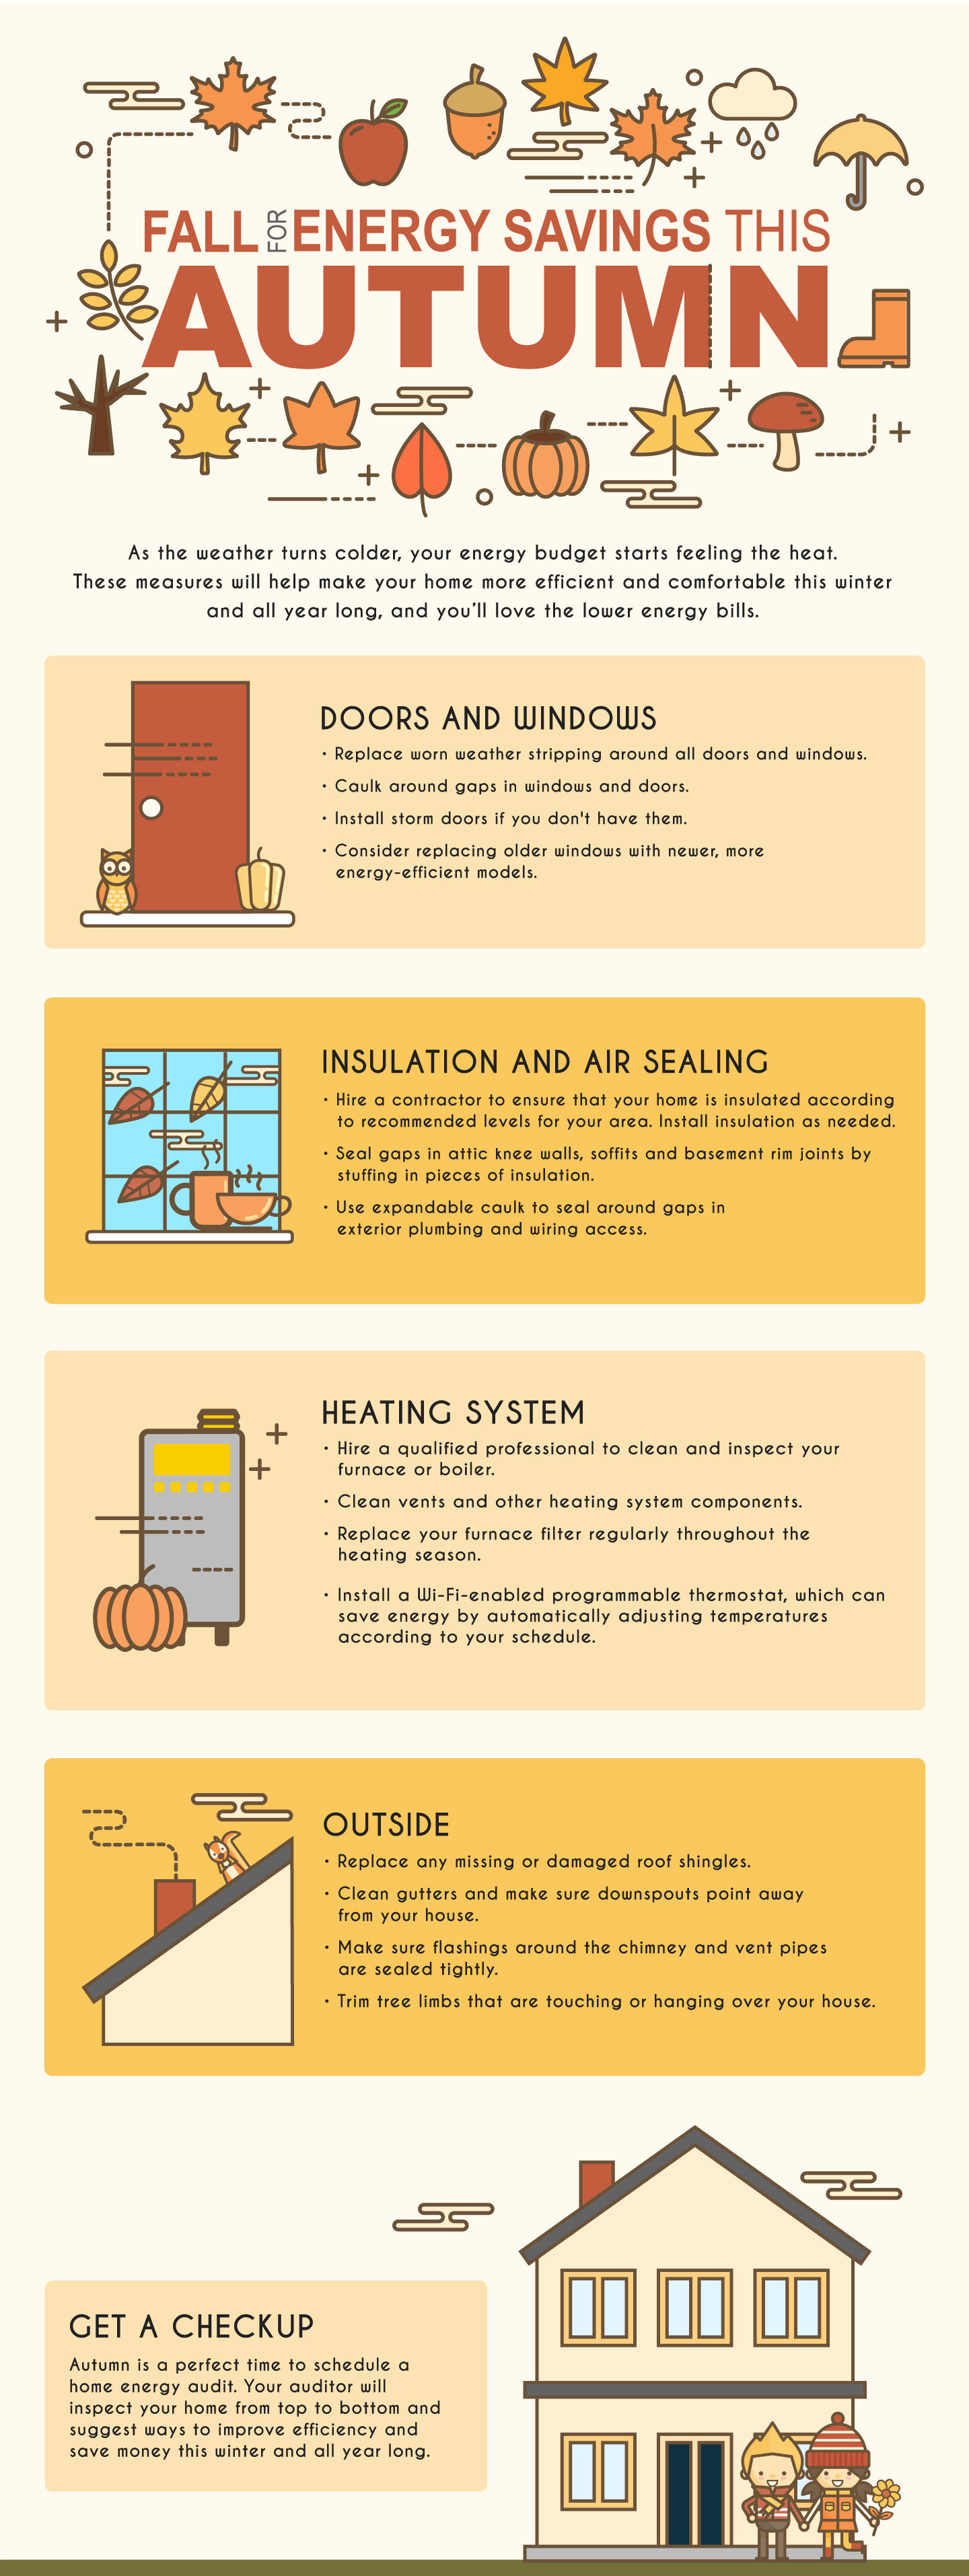 Fall for Energy Savings Infographic